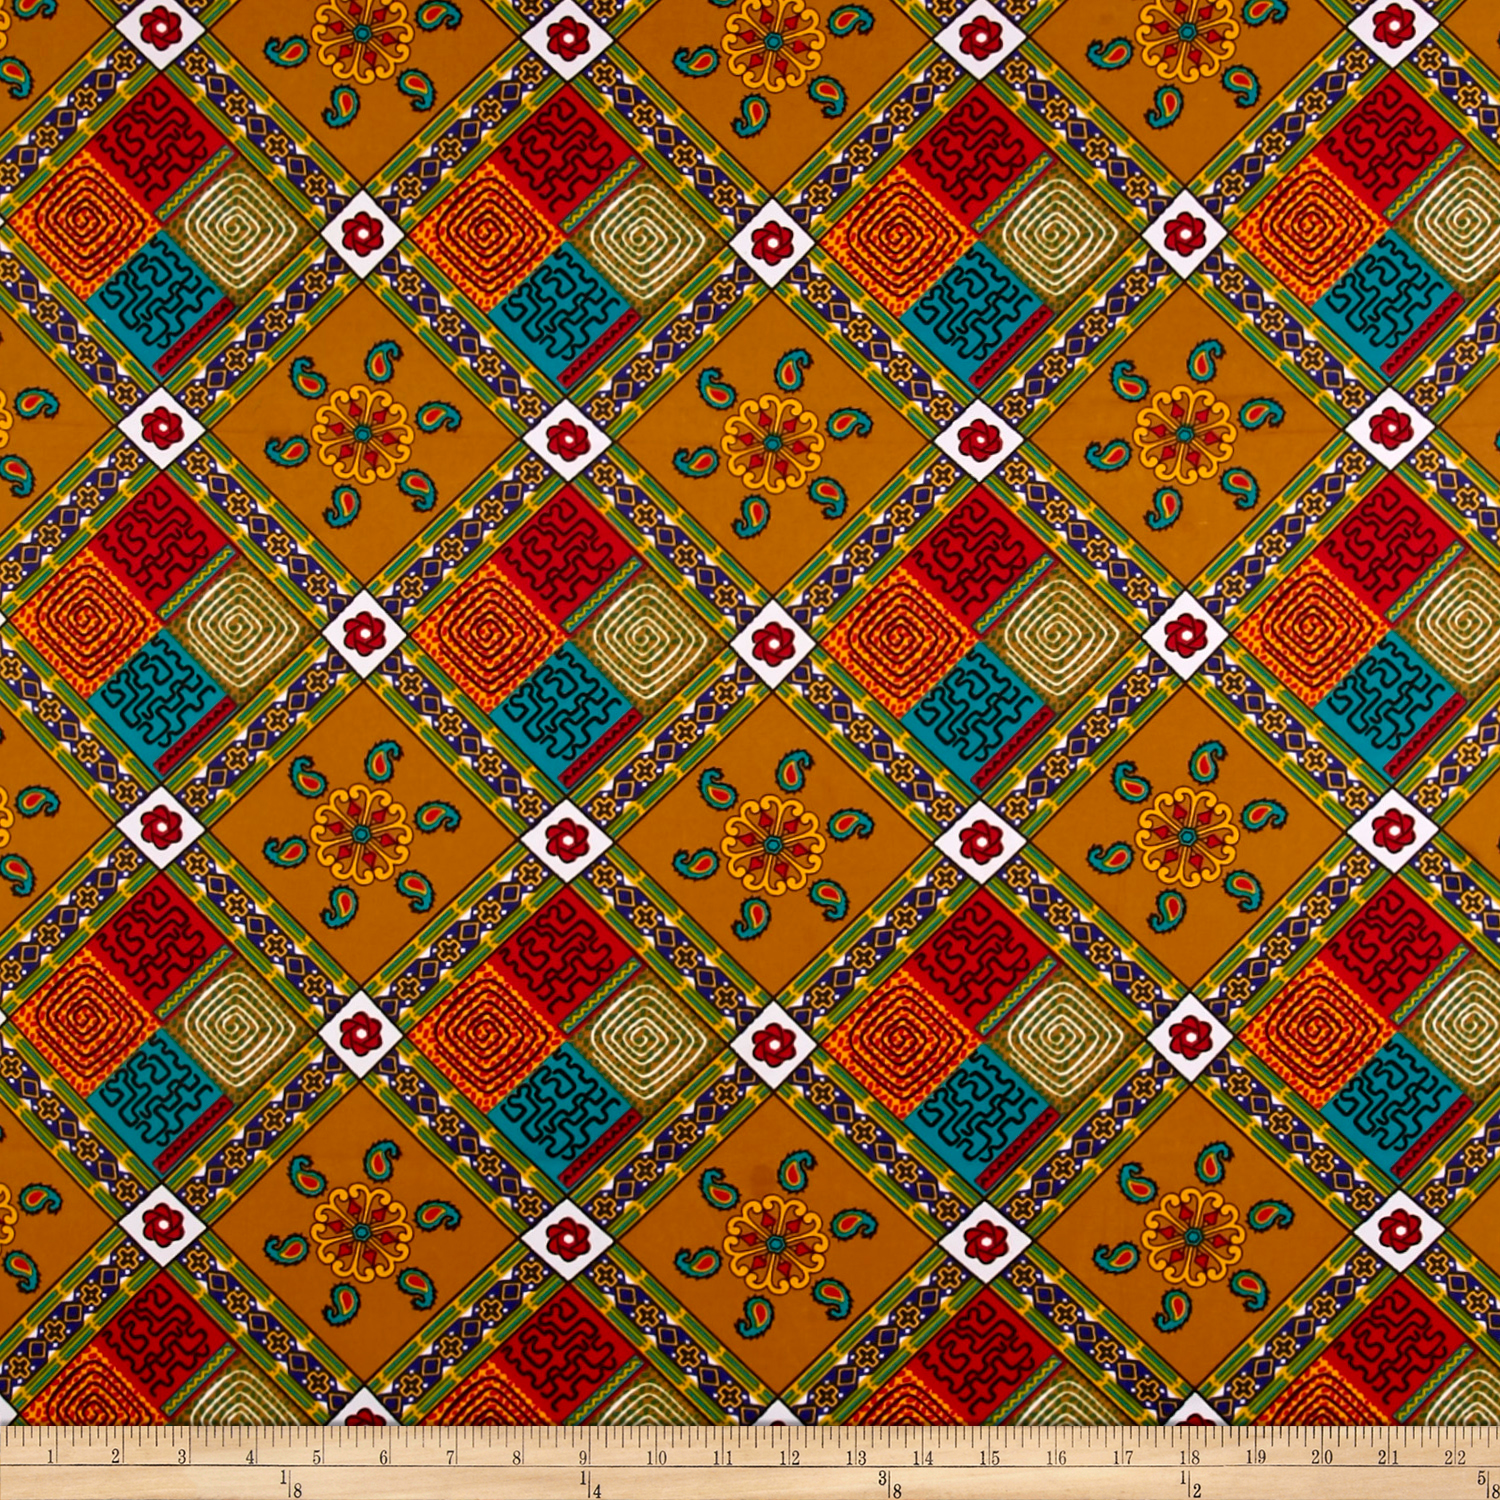 Supreme Fancy African Print 6 Yard Tan/multi Fabric